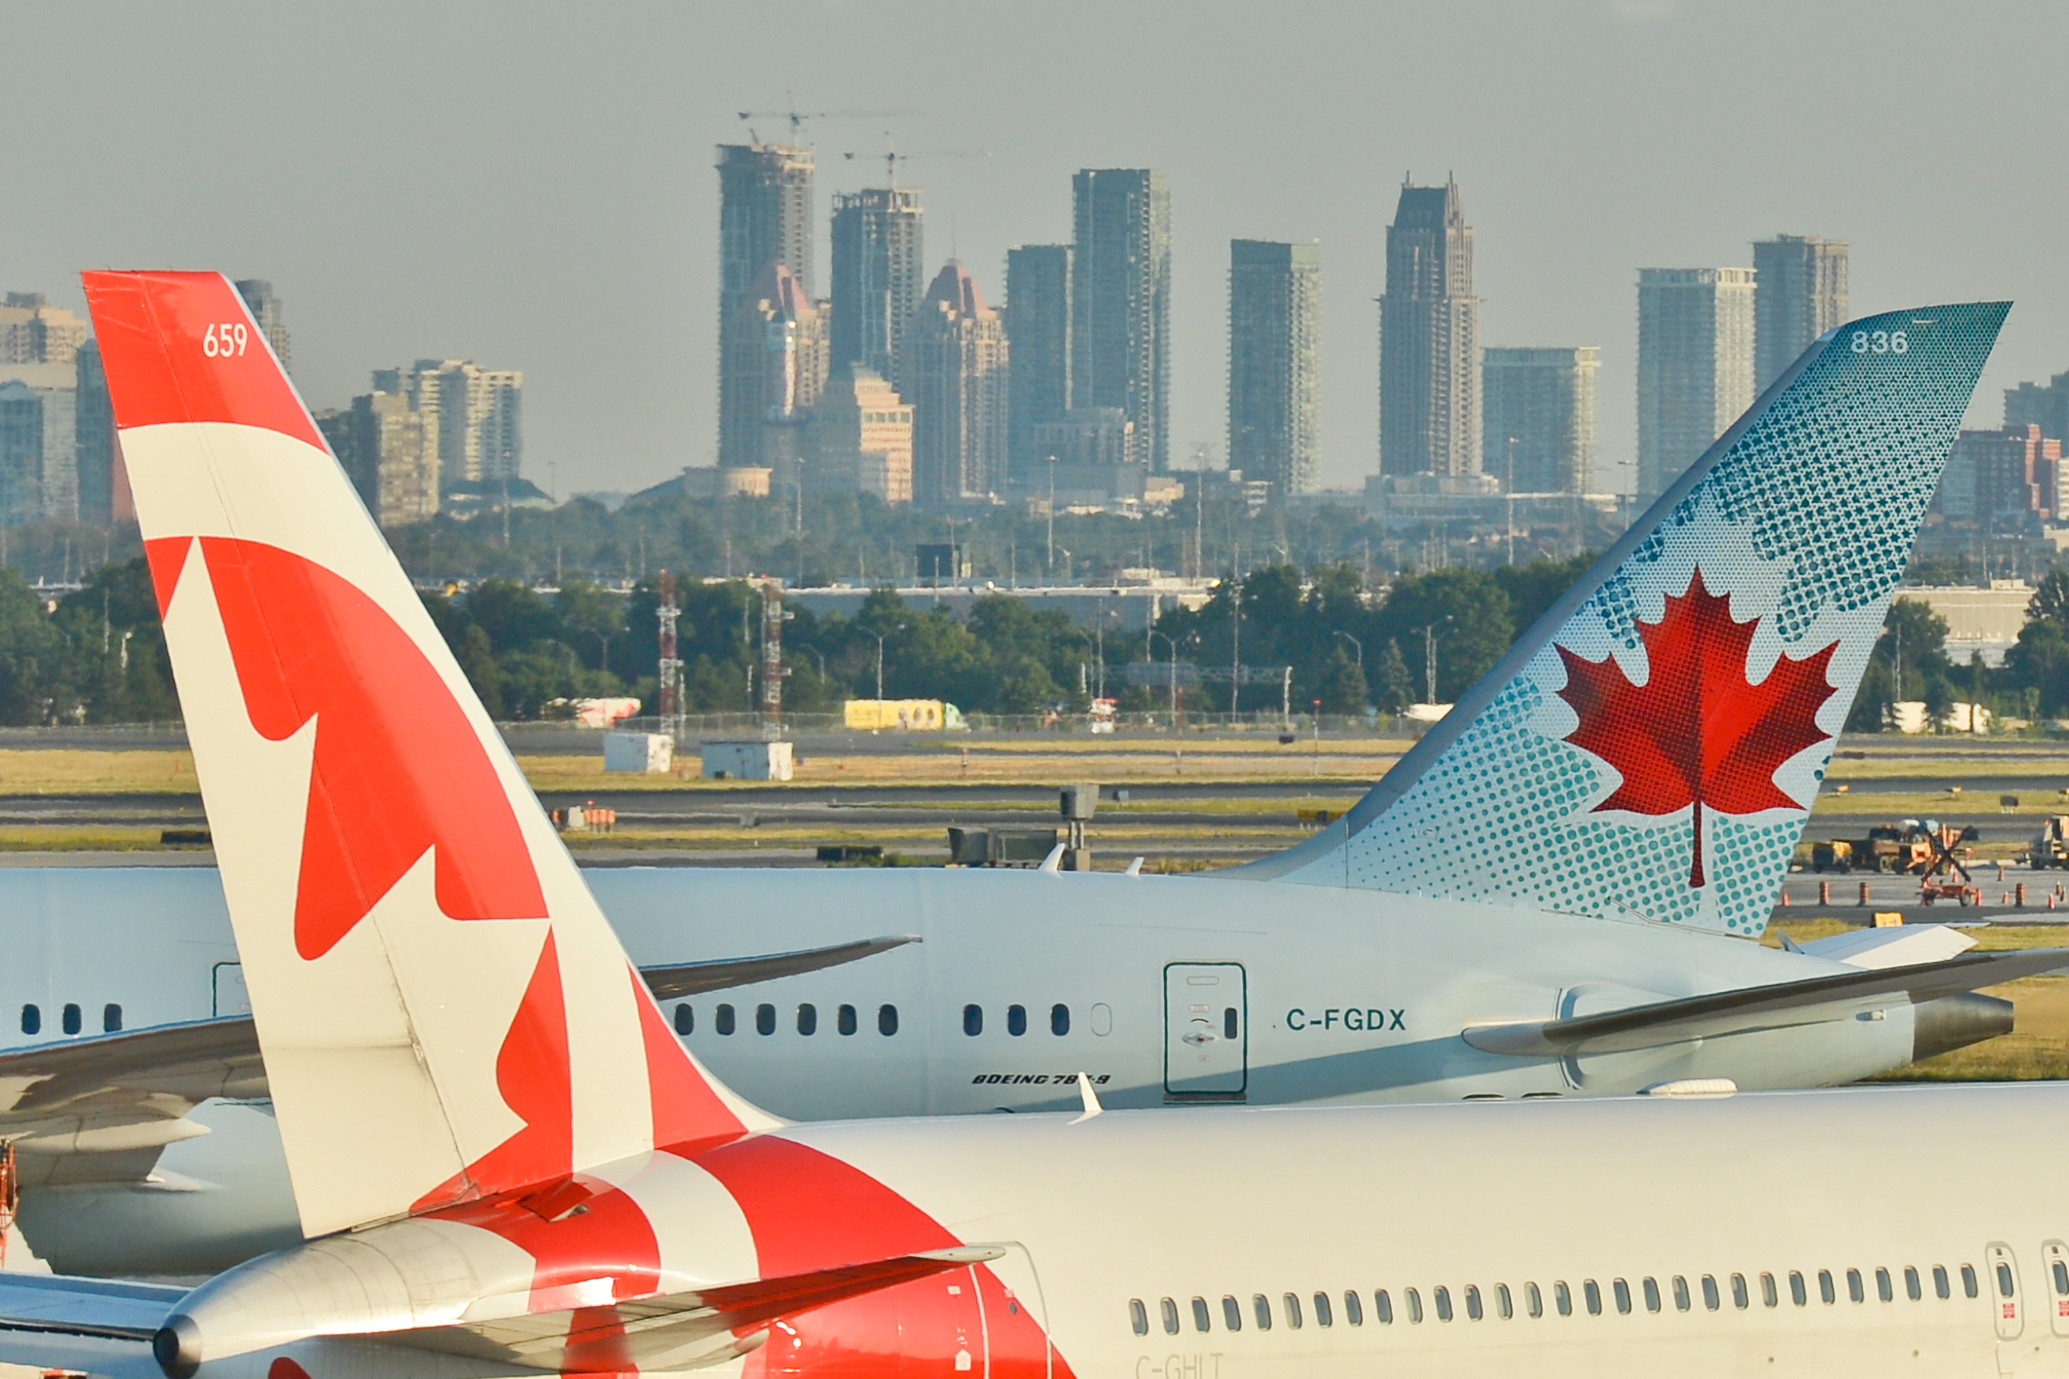 Cheap One Way Flights One Way Flights To Canada Searches Spike On U S Election Day